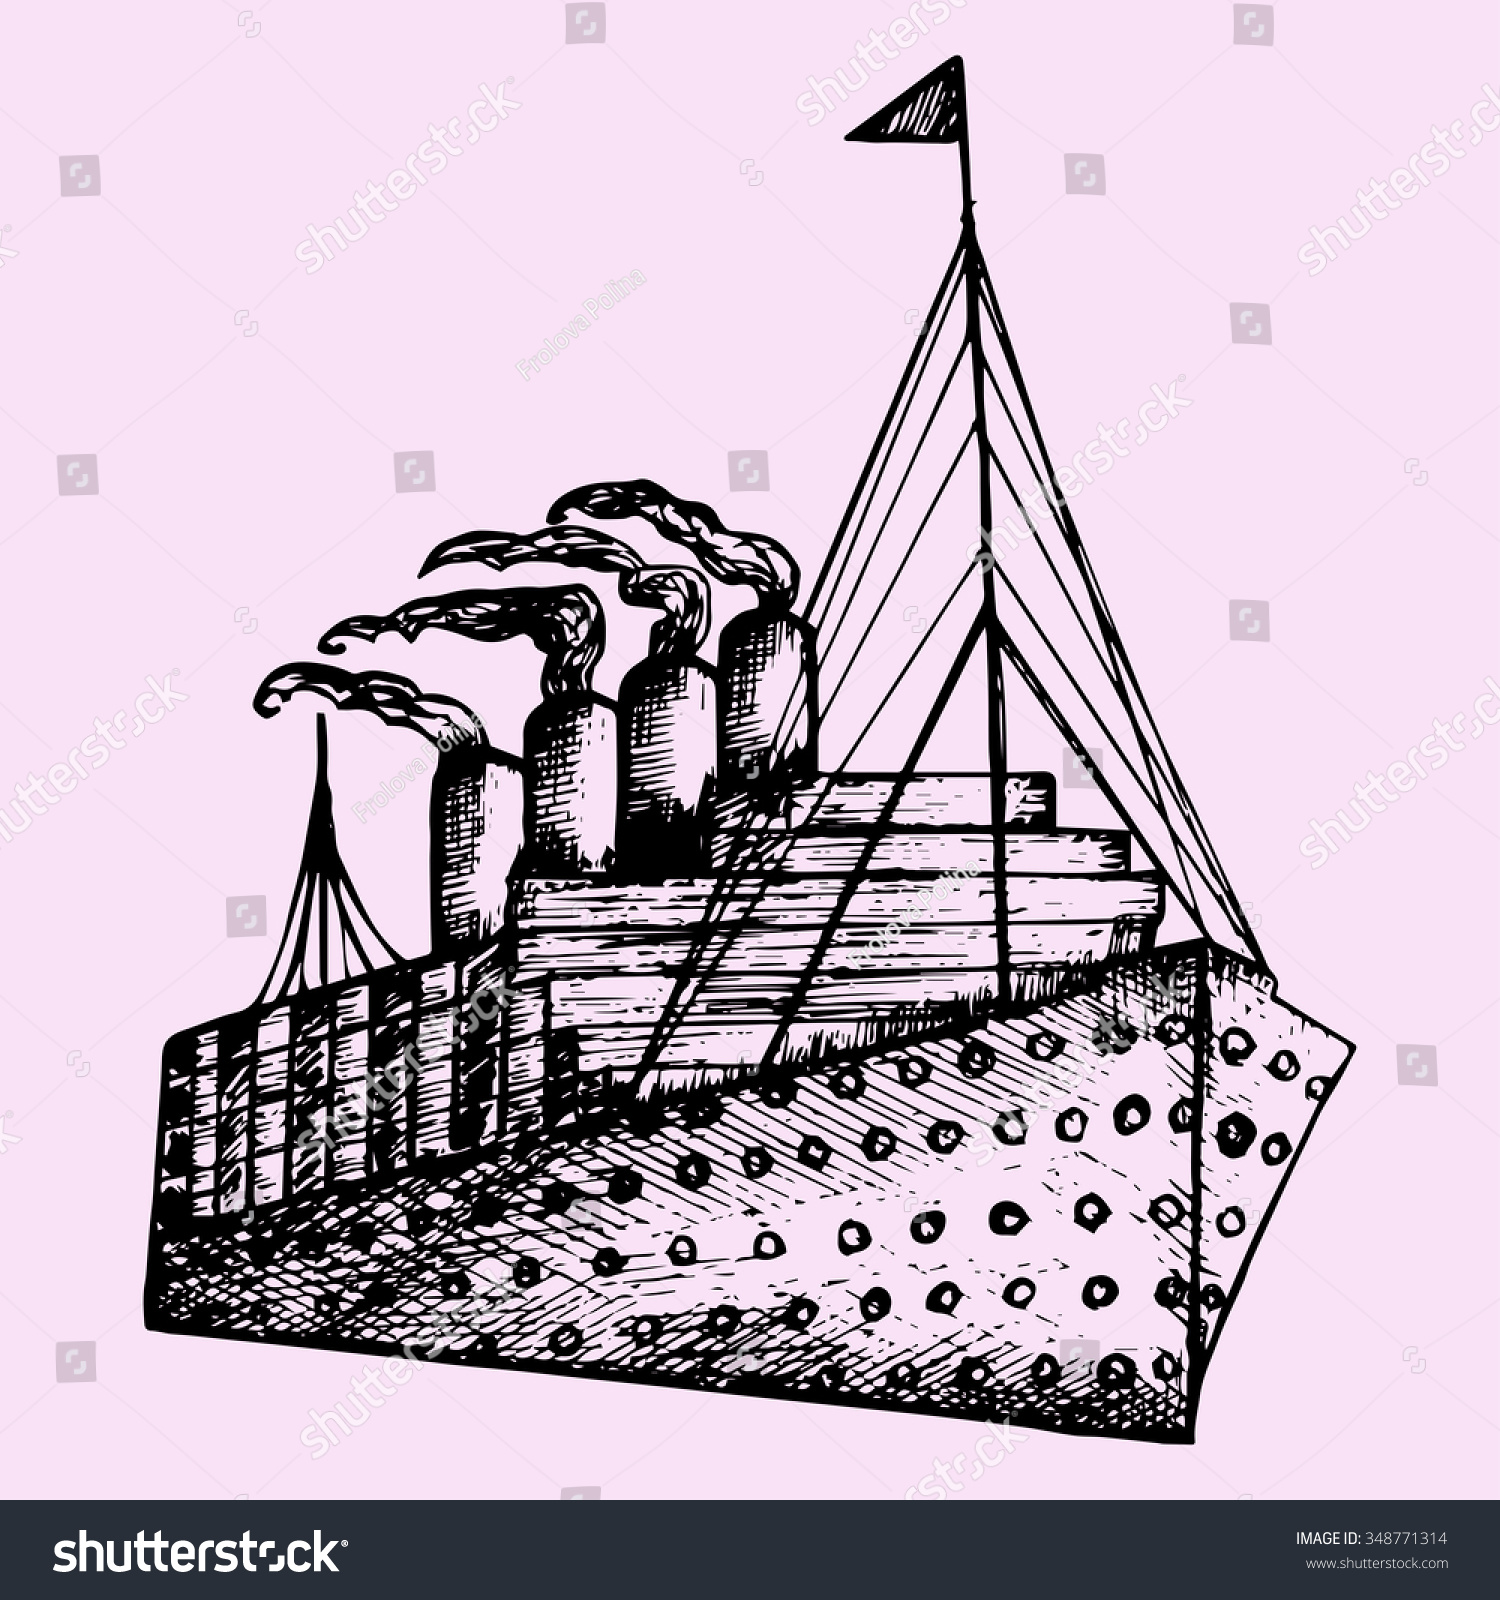 Steamship Drawing Ship, steamboat, steamship, doodle style, sketch ...